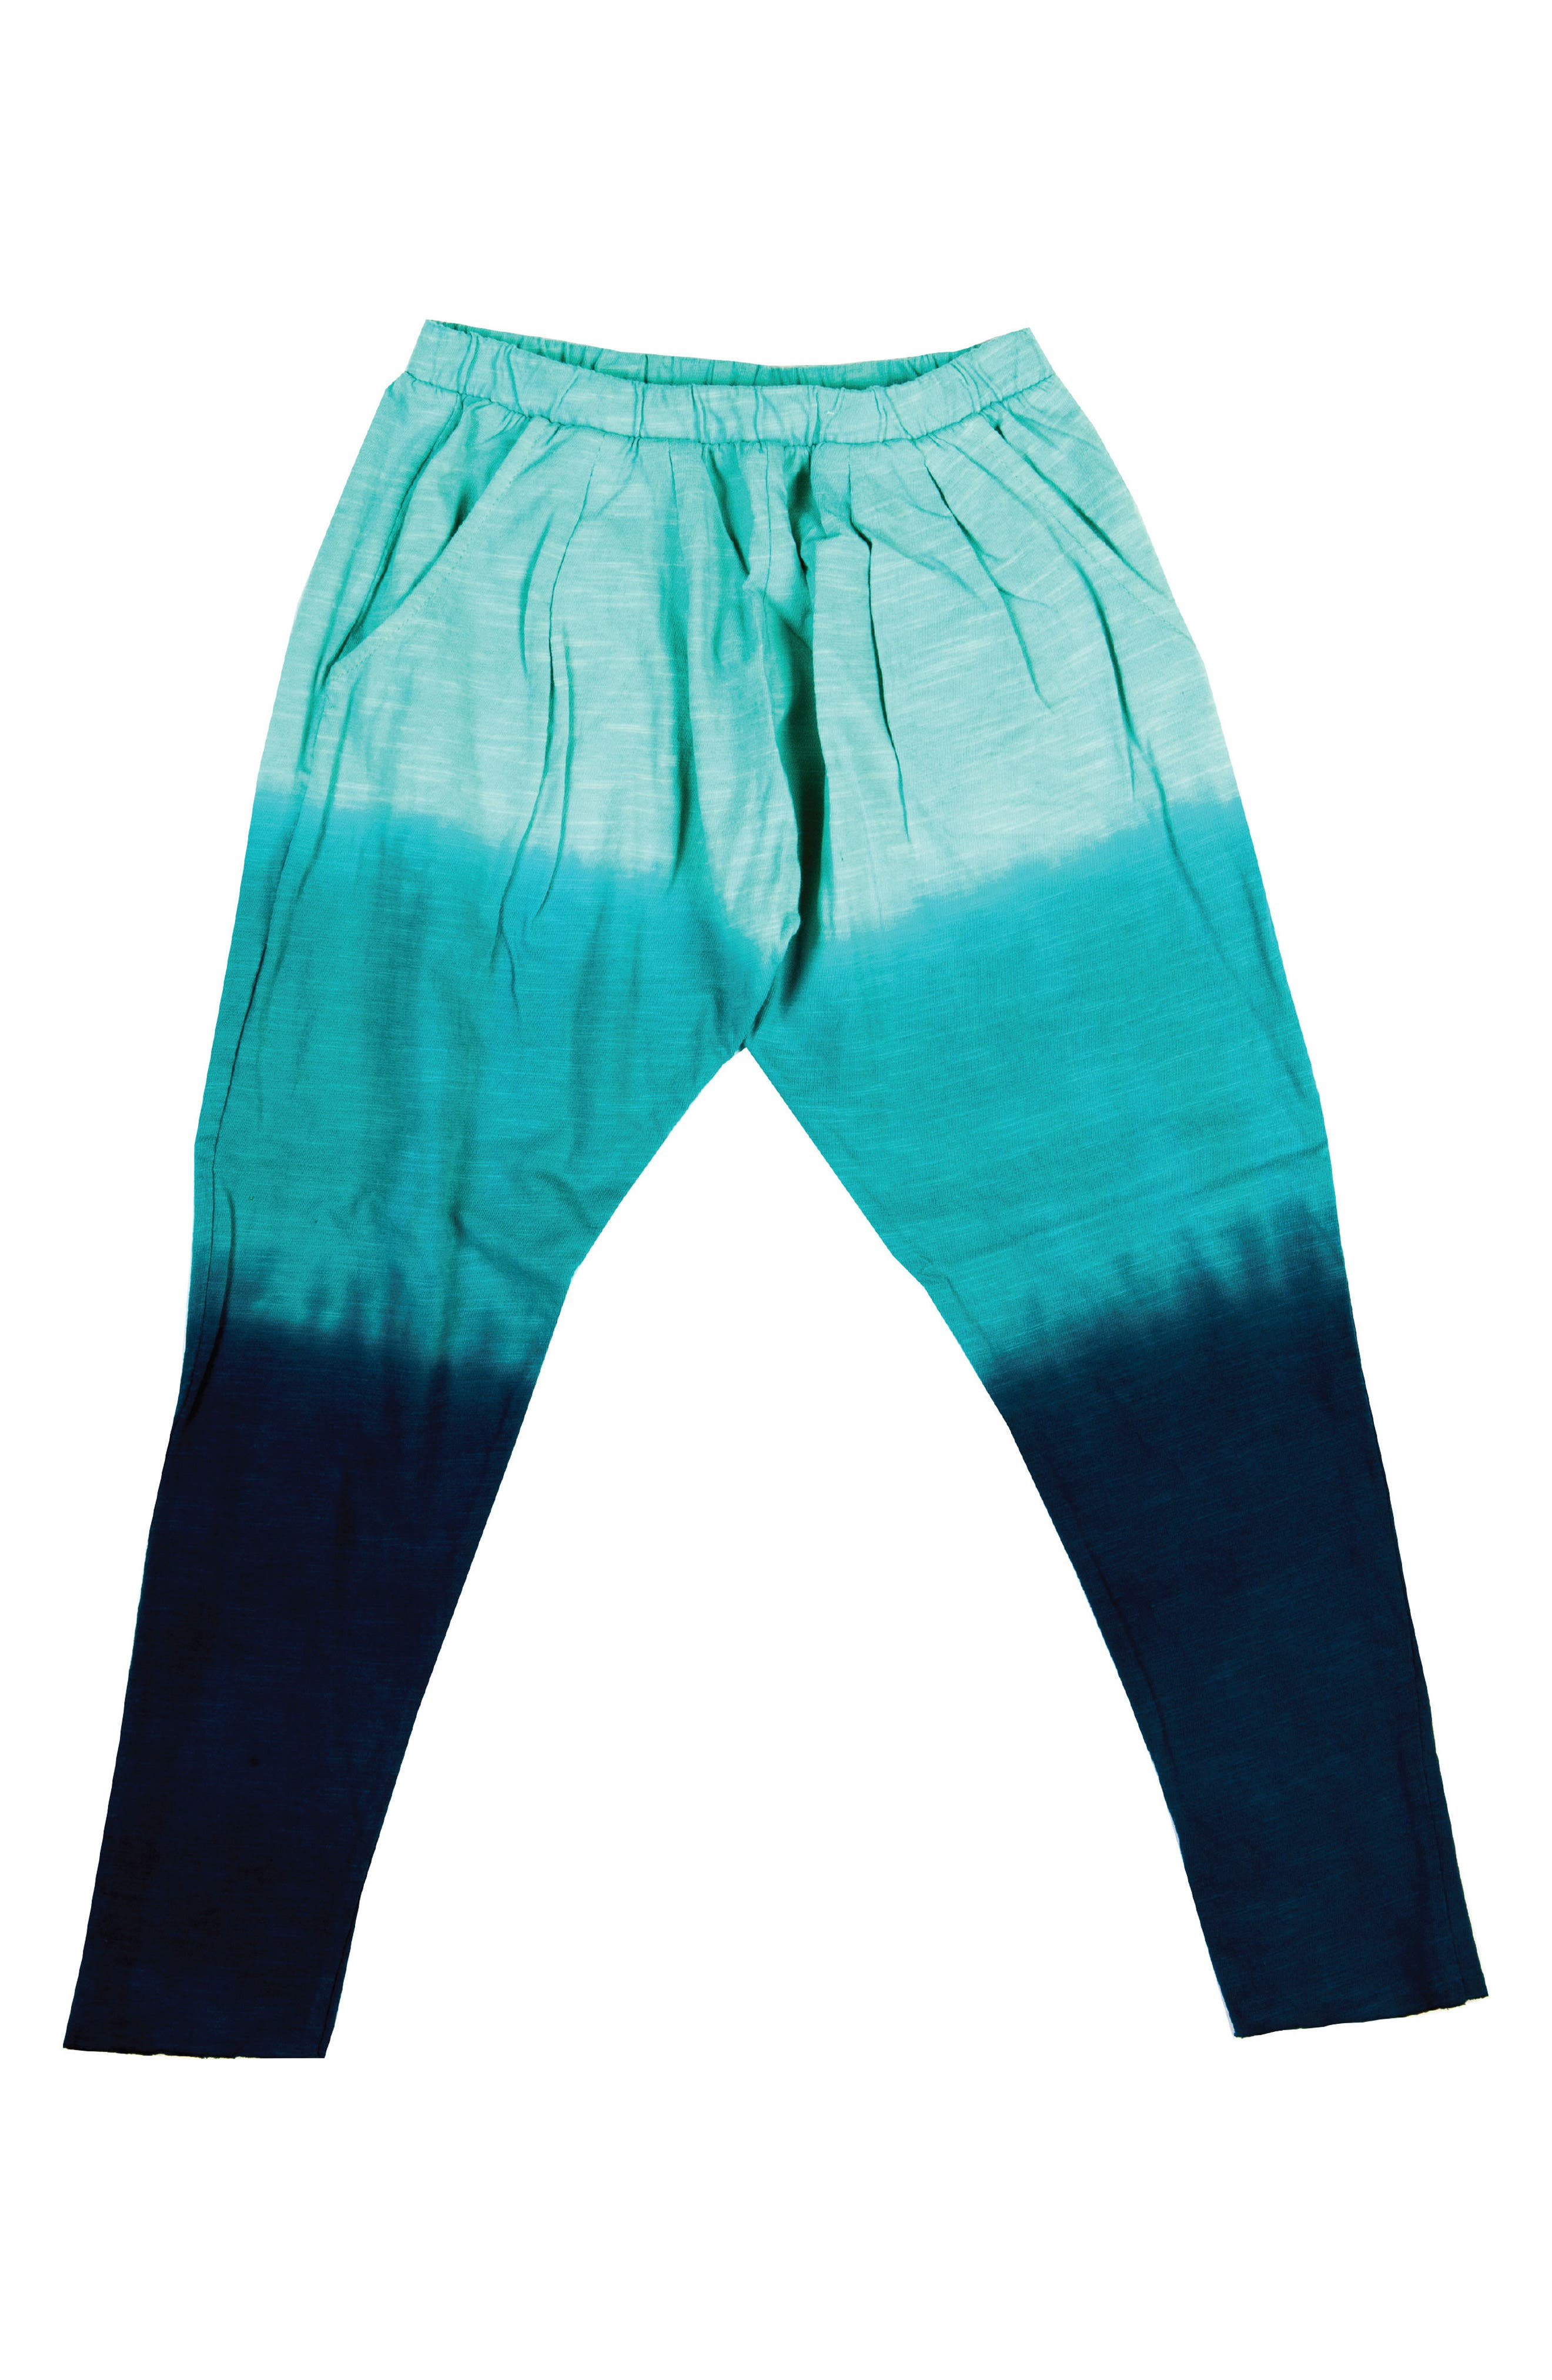 BOWIE X JAMES Dip Dye Harem Pants (Toddler Girls, Little Girls & Big Girls)